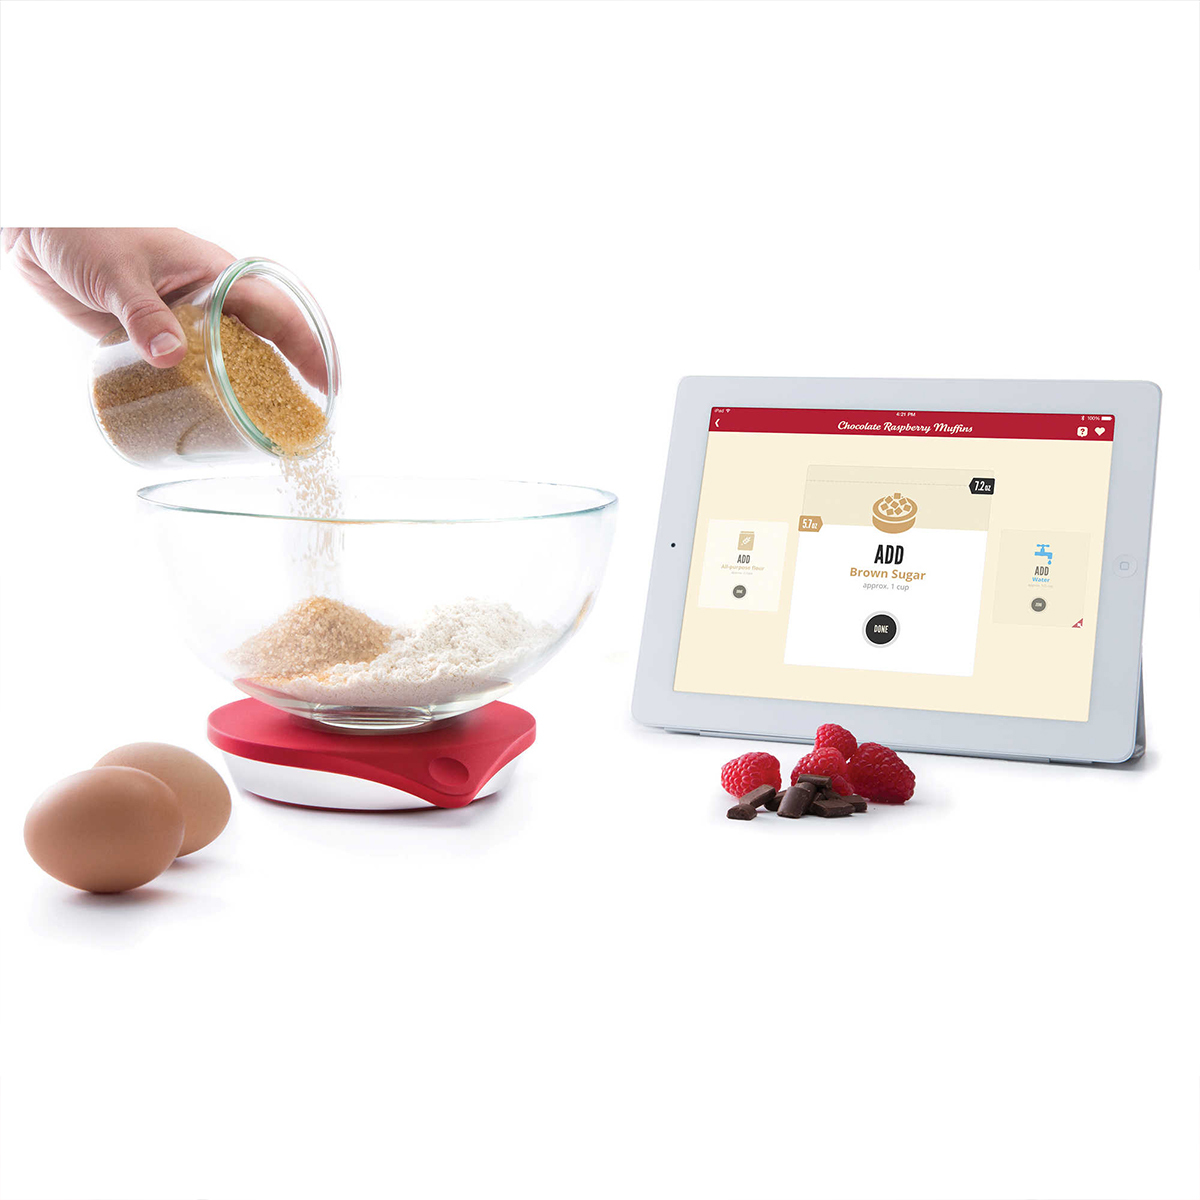 Smart kitchen scale with recipe app photo